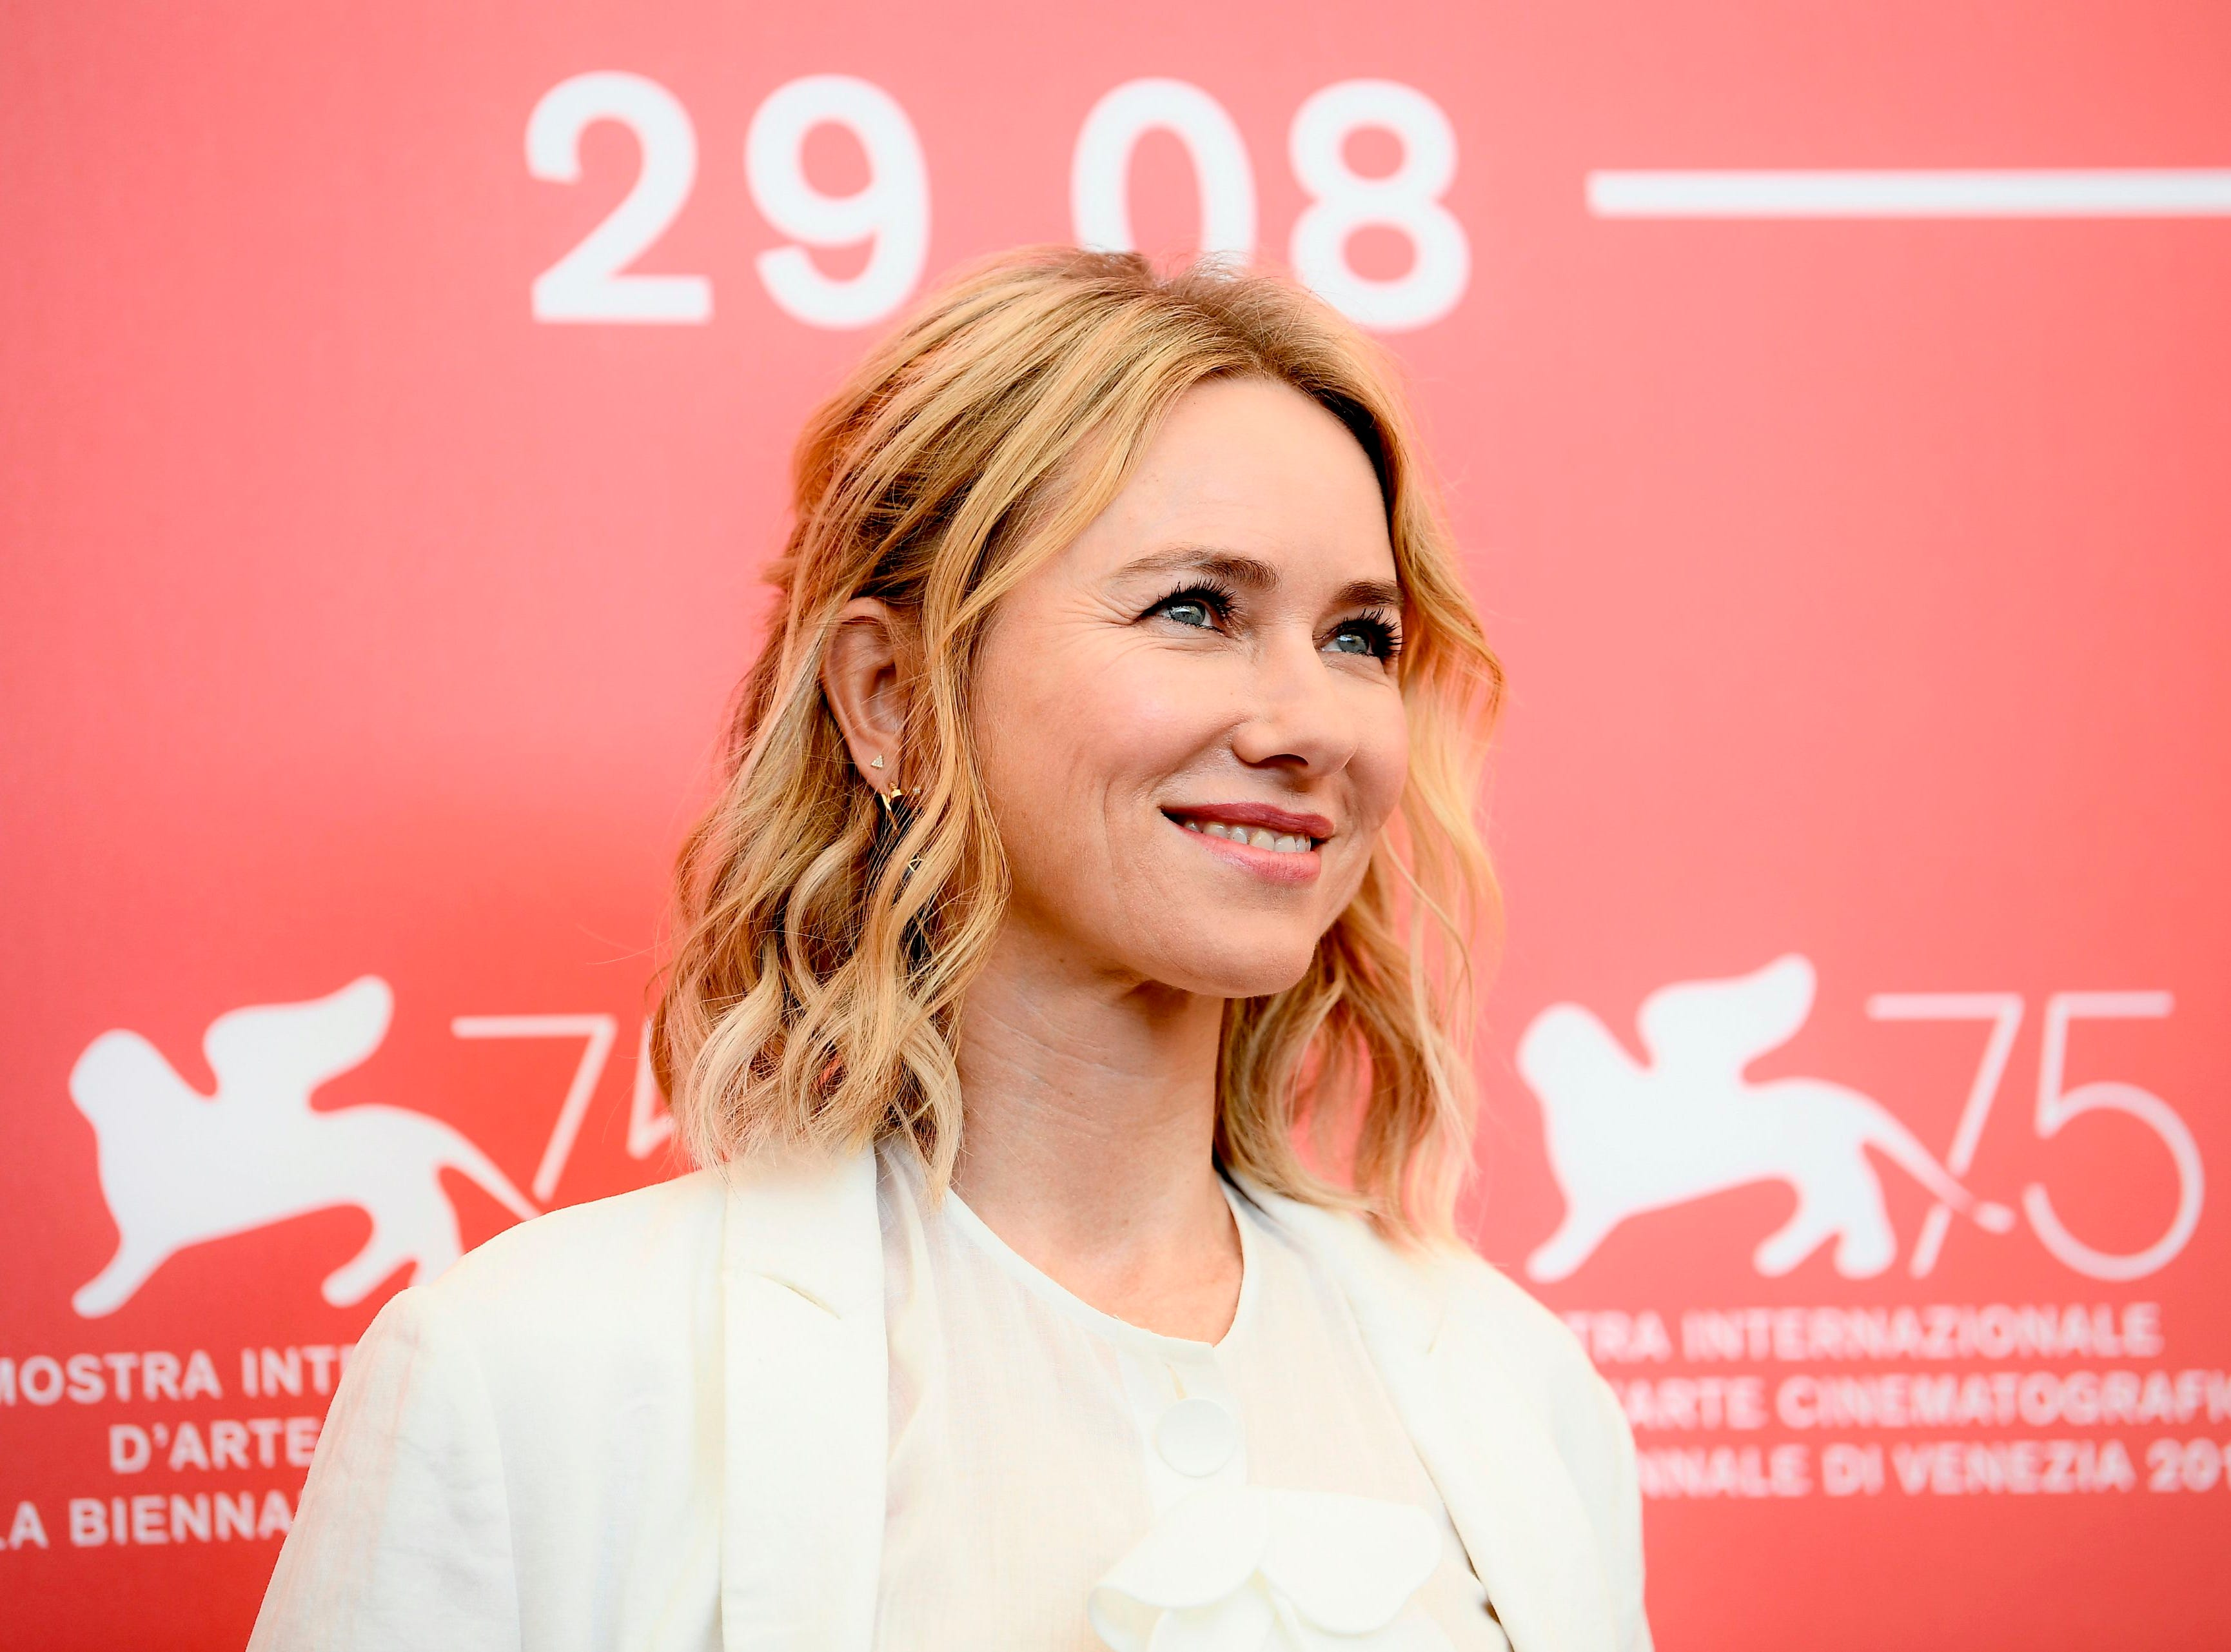 Member of the Venezia 75 competition jury, English actress Naomi Watts attends a photocall of the jury of the 75th Venice Film Festival on August 29, 2018 at Venice Lido. (Photo by Filippo MONTEFORTE / AFP)FILIPPO MONTEFORTE/AFP/Getty Images ORIG FILE ID: AFP_18O8H1